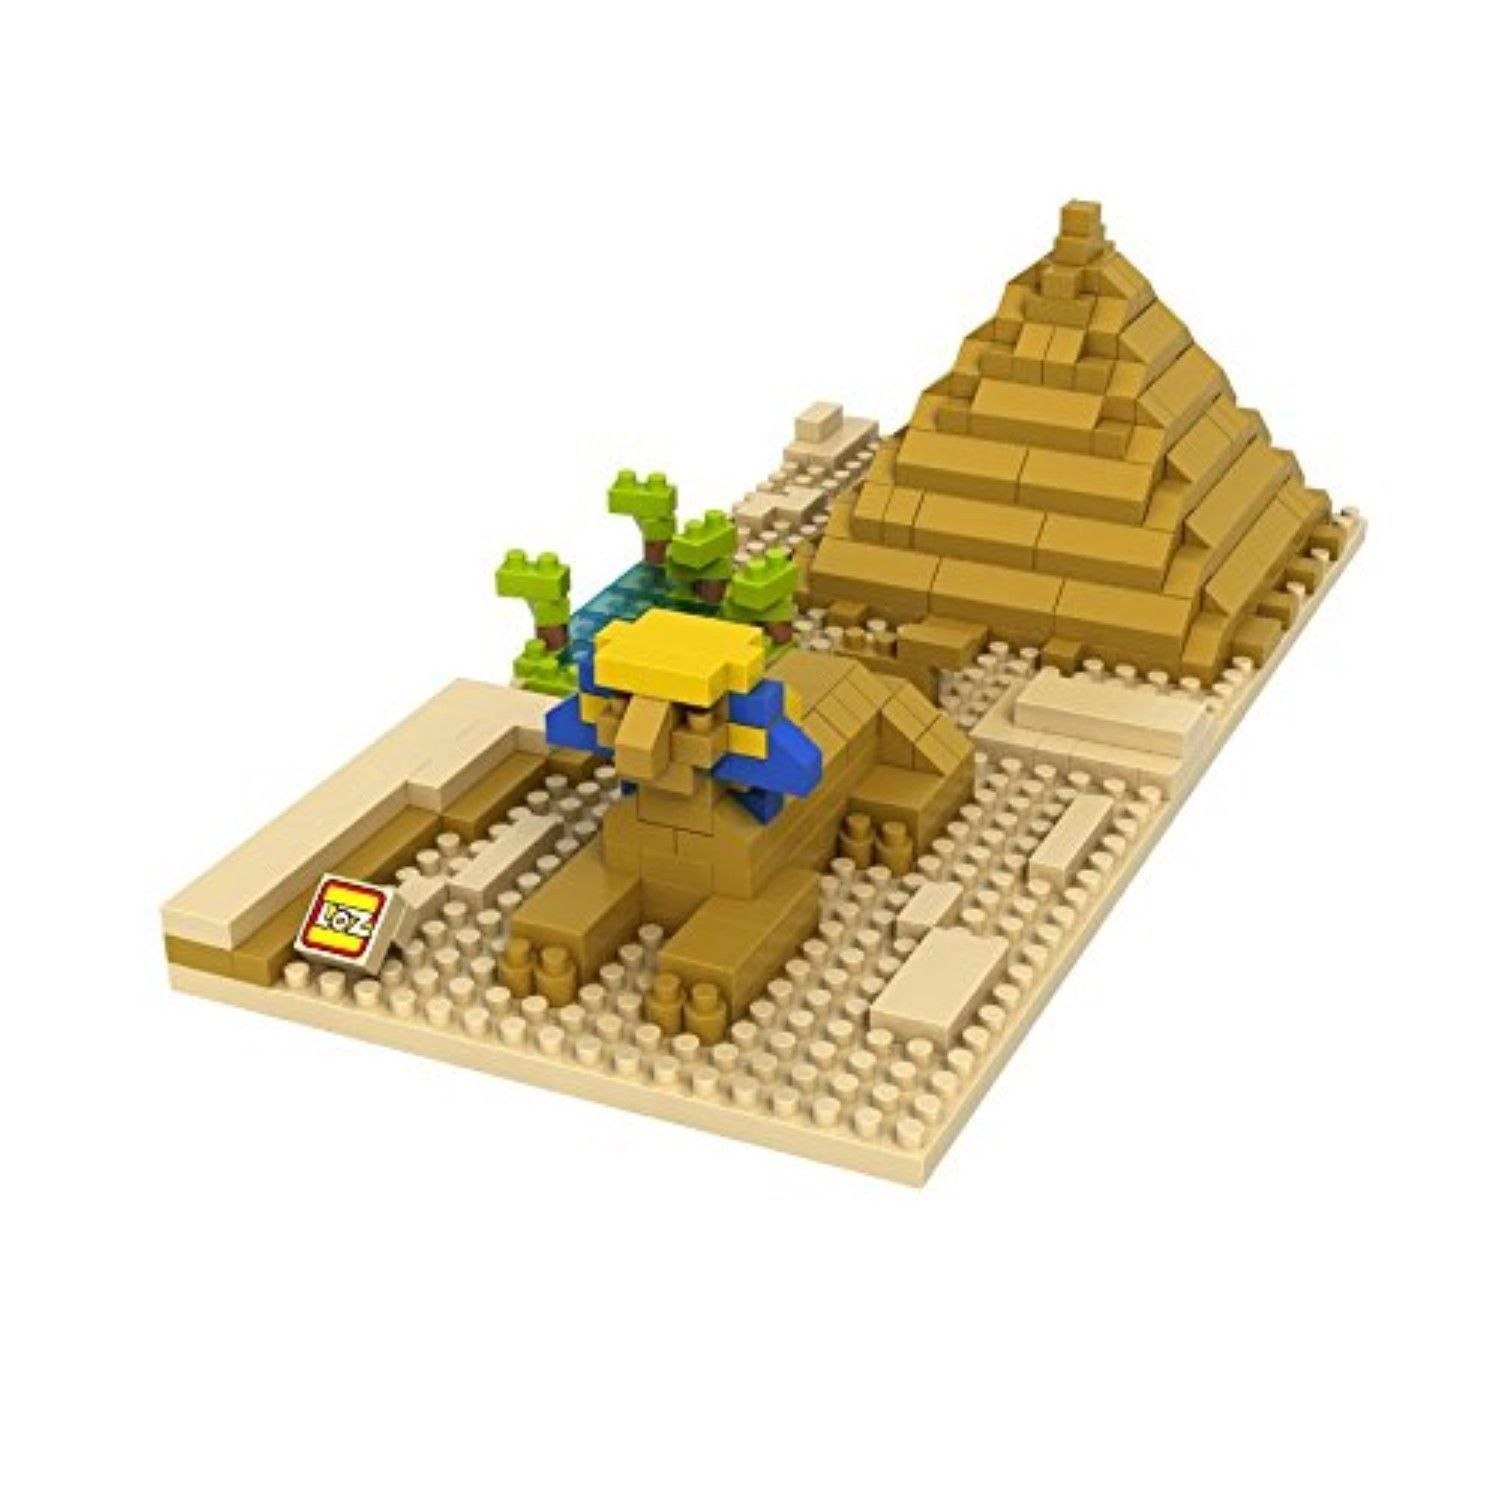 Ben 10 toys images  LOZ Diamond Blocks World Famous Architecture  Sphinx and Pyramid